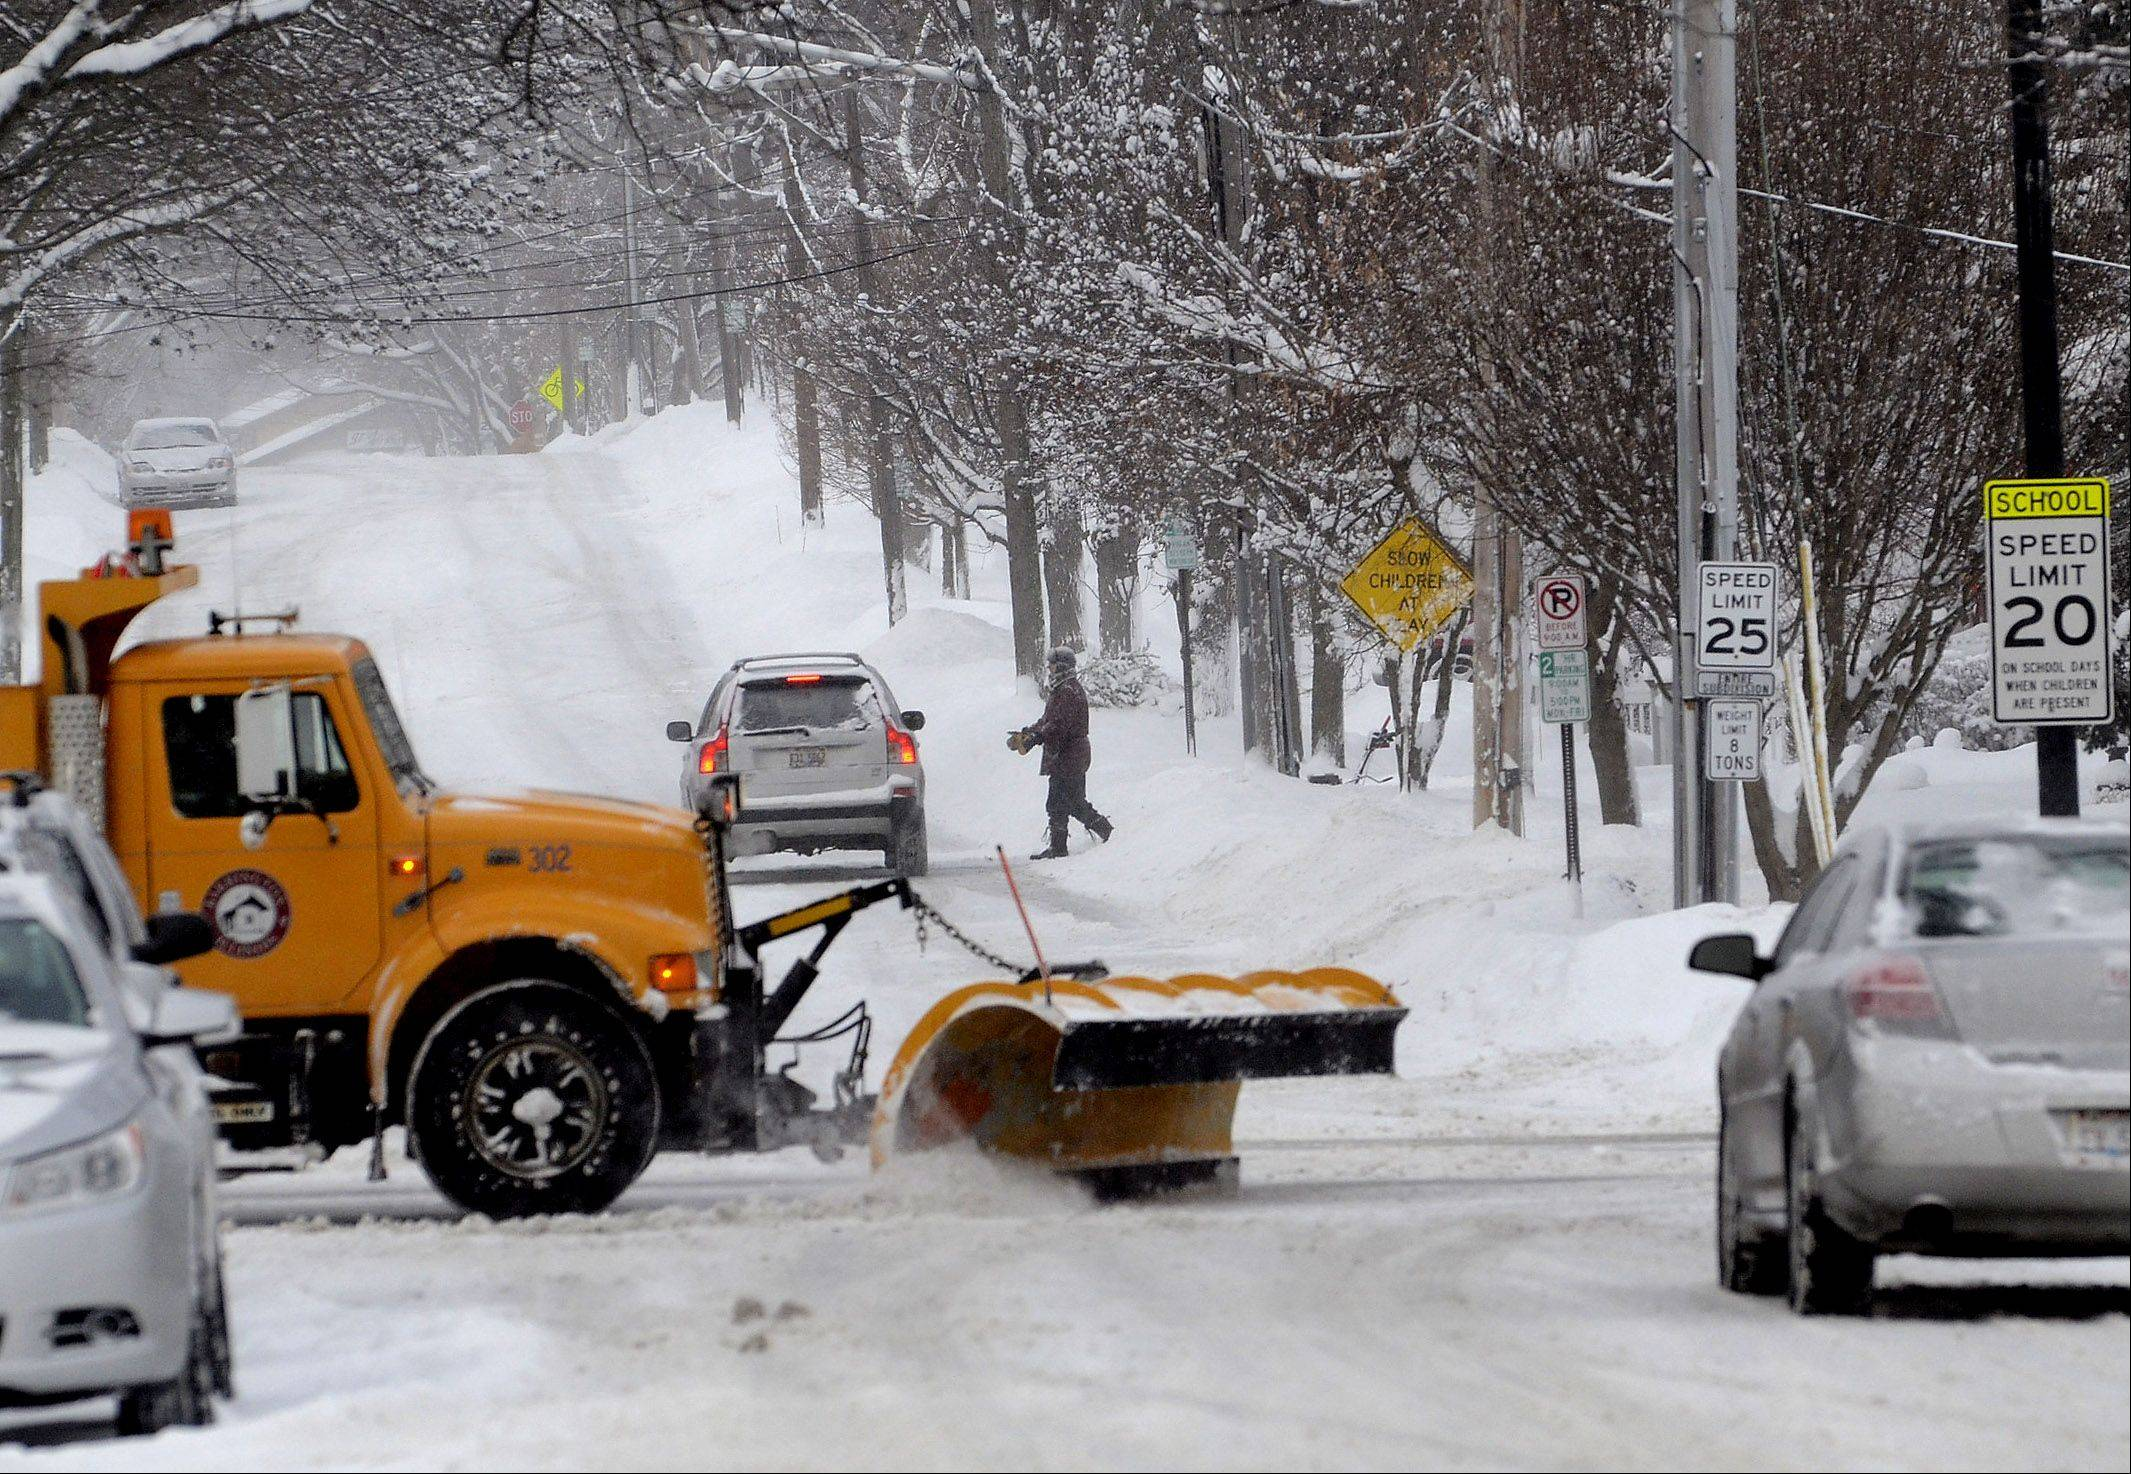 Public works crews in Barrington have been busy thanks to an unusually cold and snowy winter. The village already has overspent its budget for snow removal costs, but officials hope a contingency fund will cover the remainder of the season.